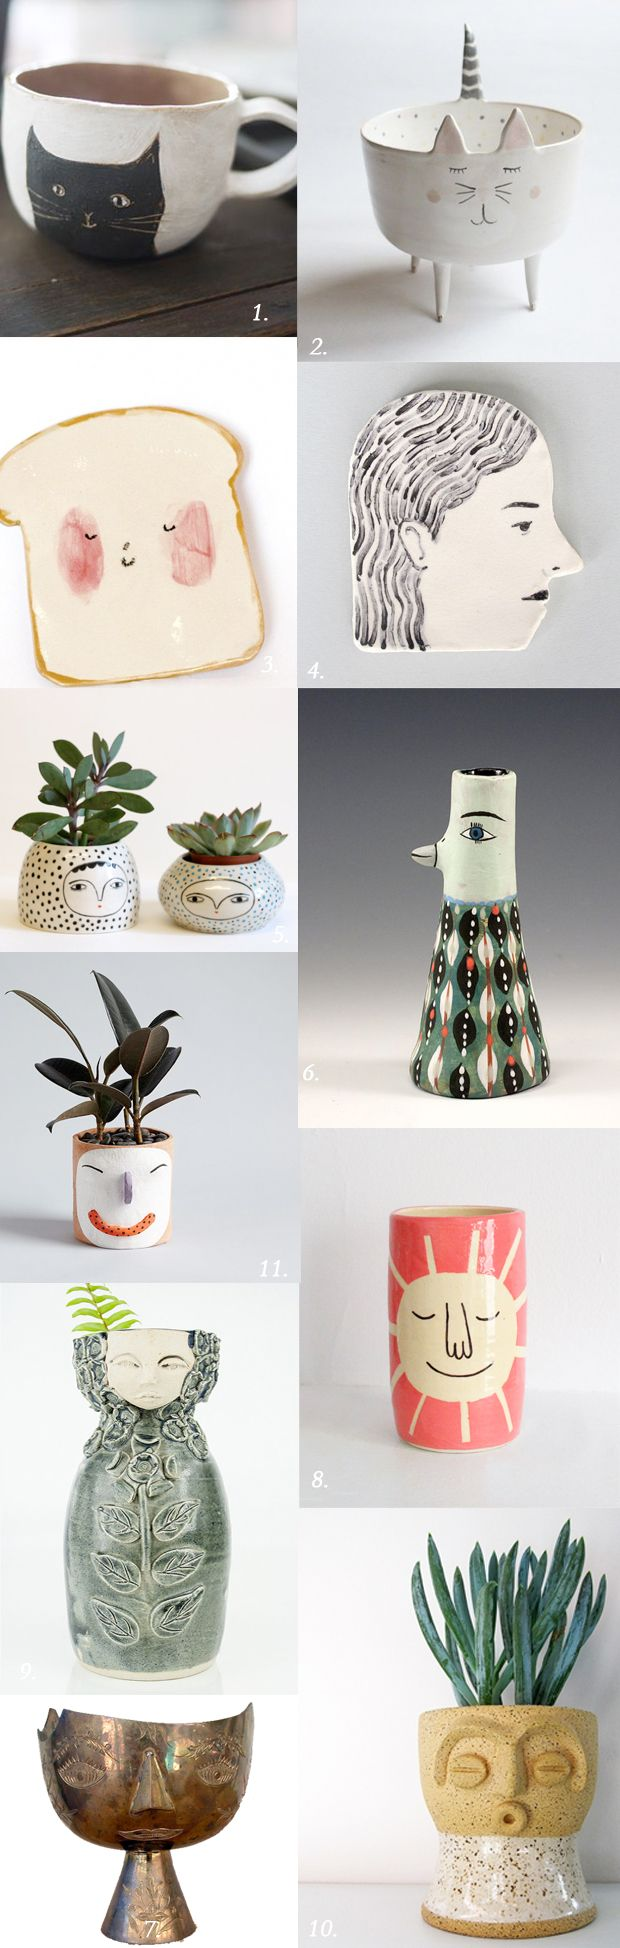 Trend Alert: Vessels with personality...funky and fun minimalist ,contemporary ceramics in scandi and japan trend